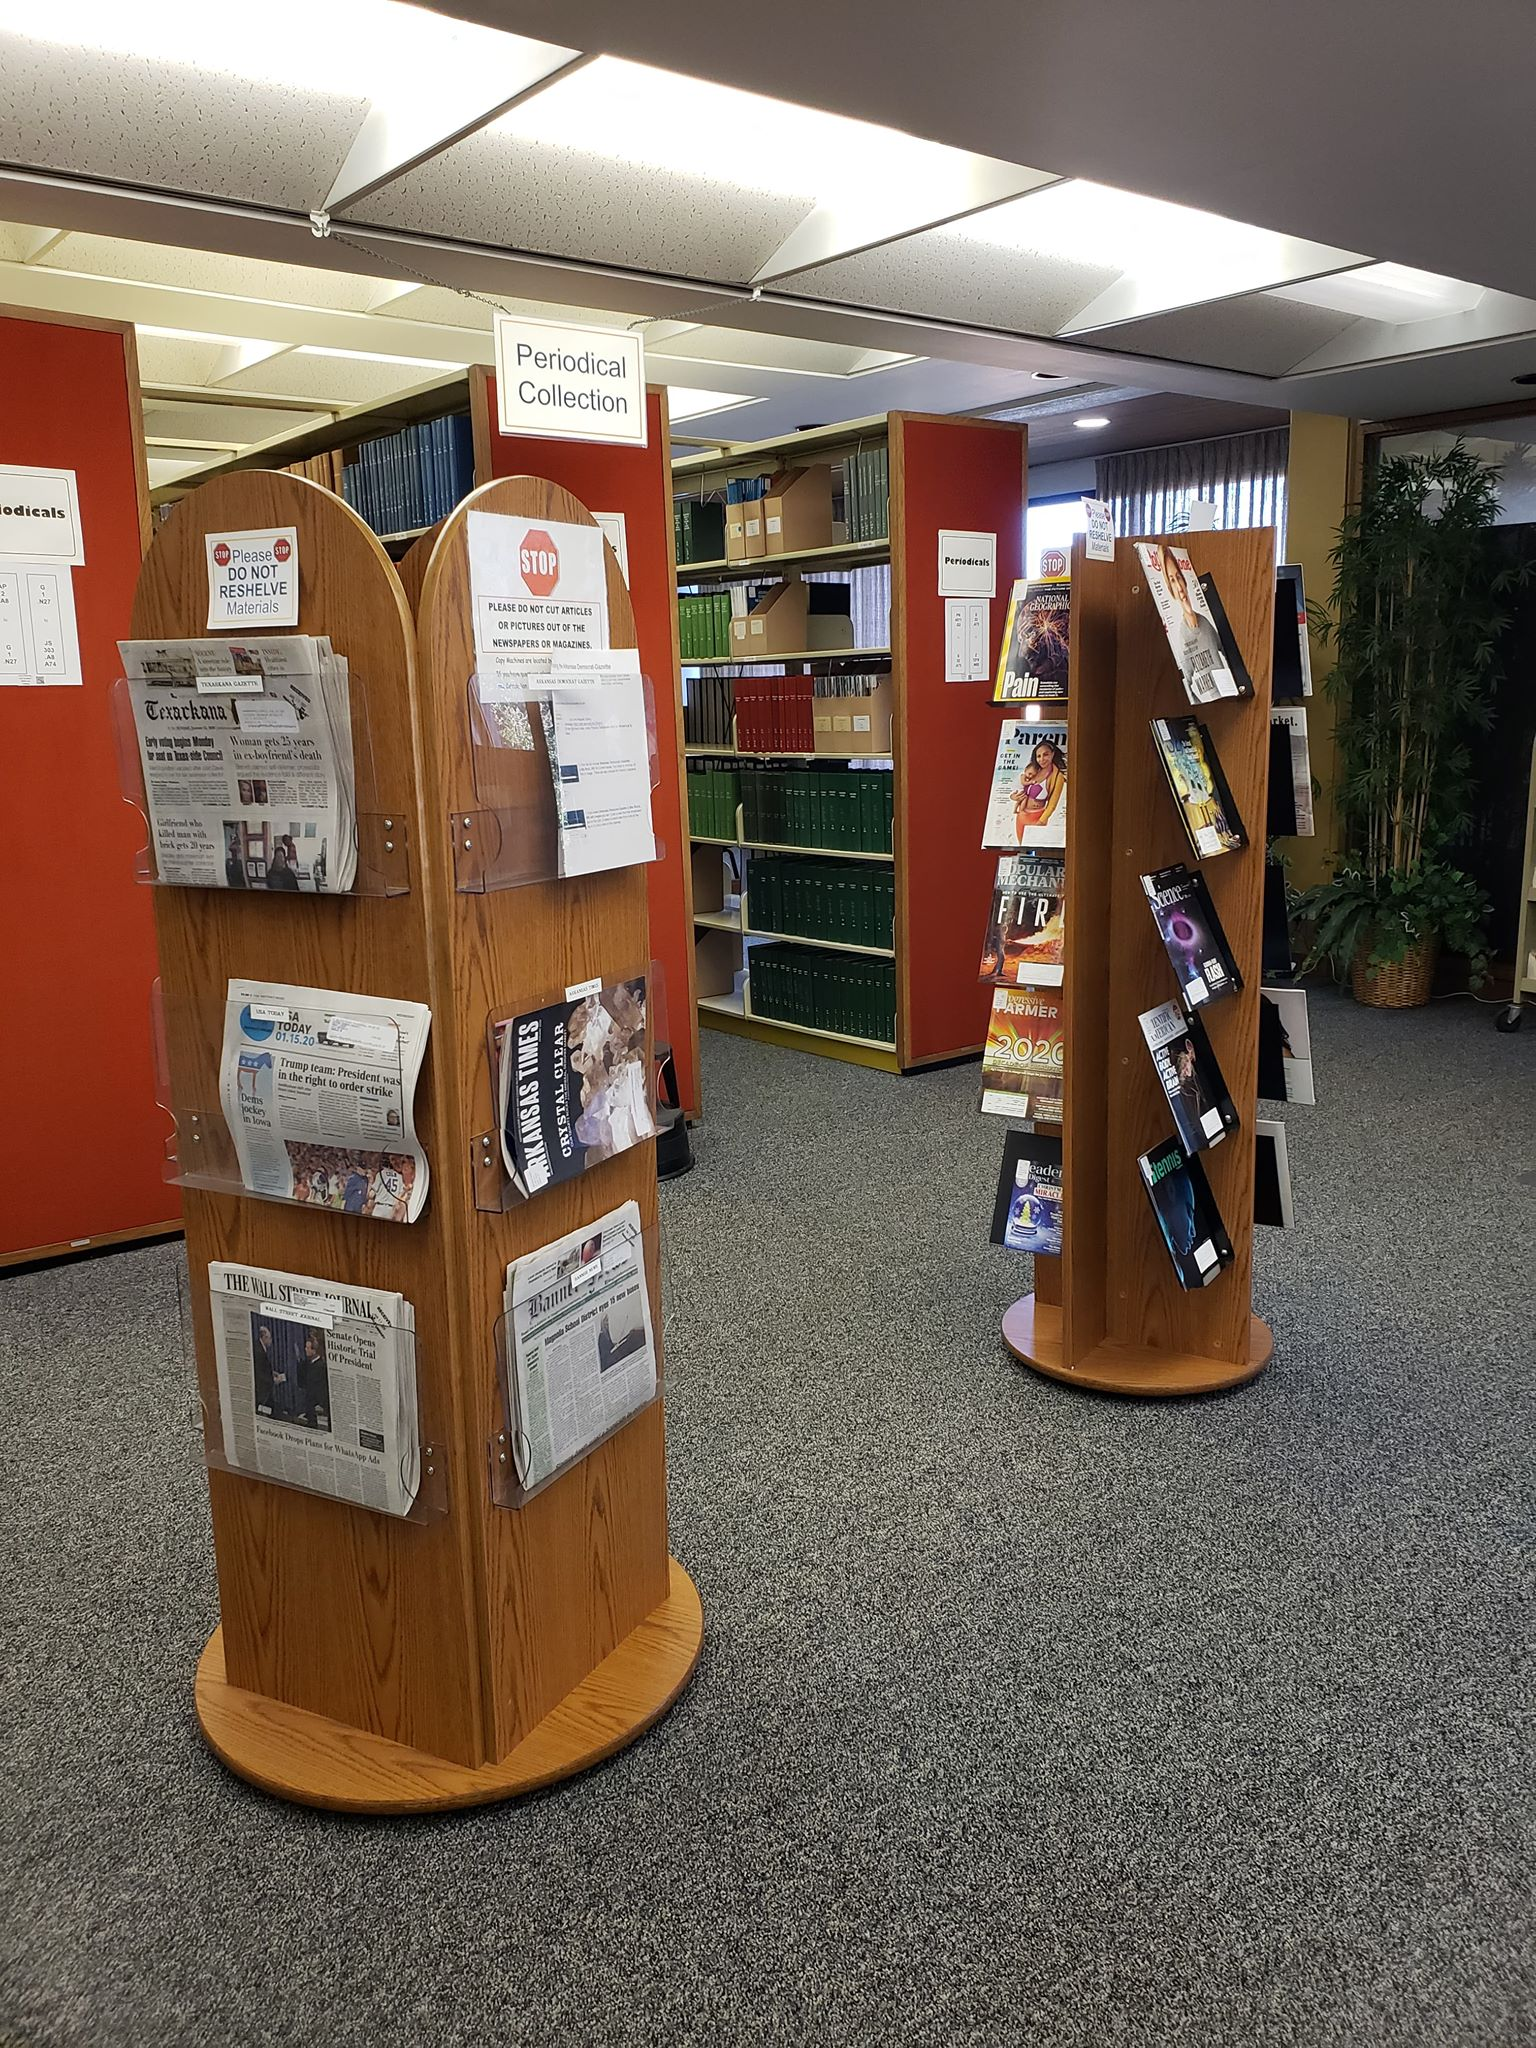 Photograph of Magazine and Newspaper Collection